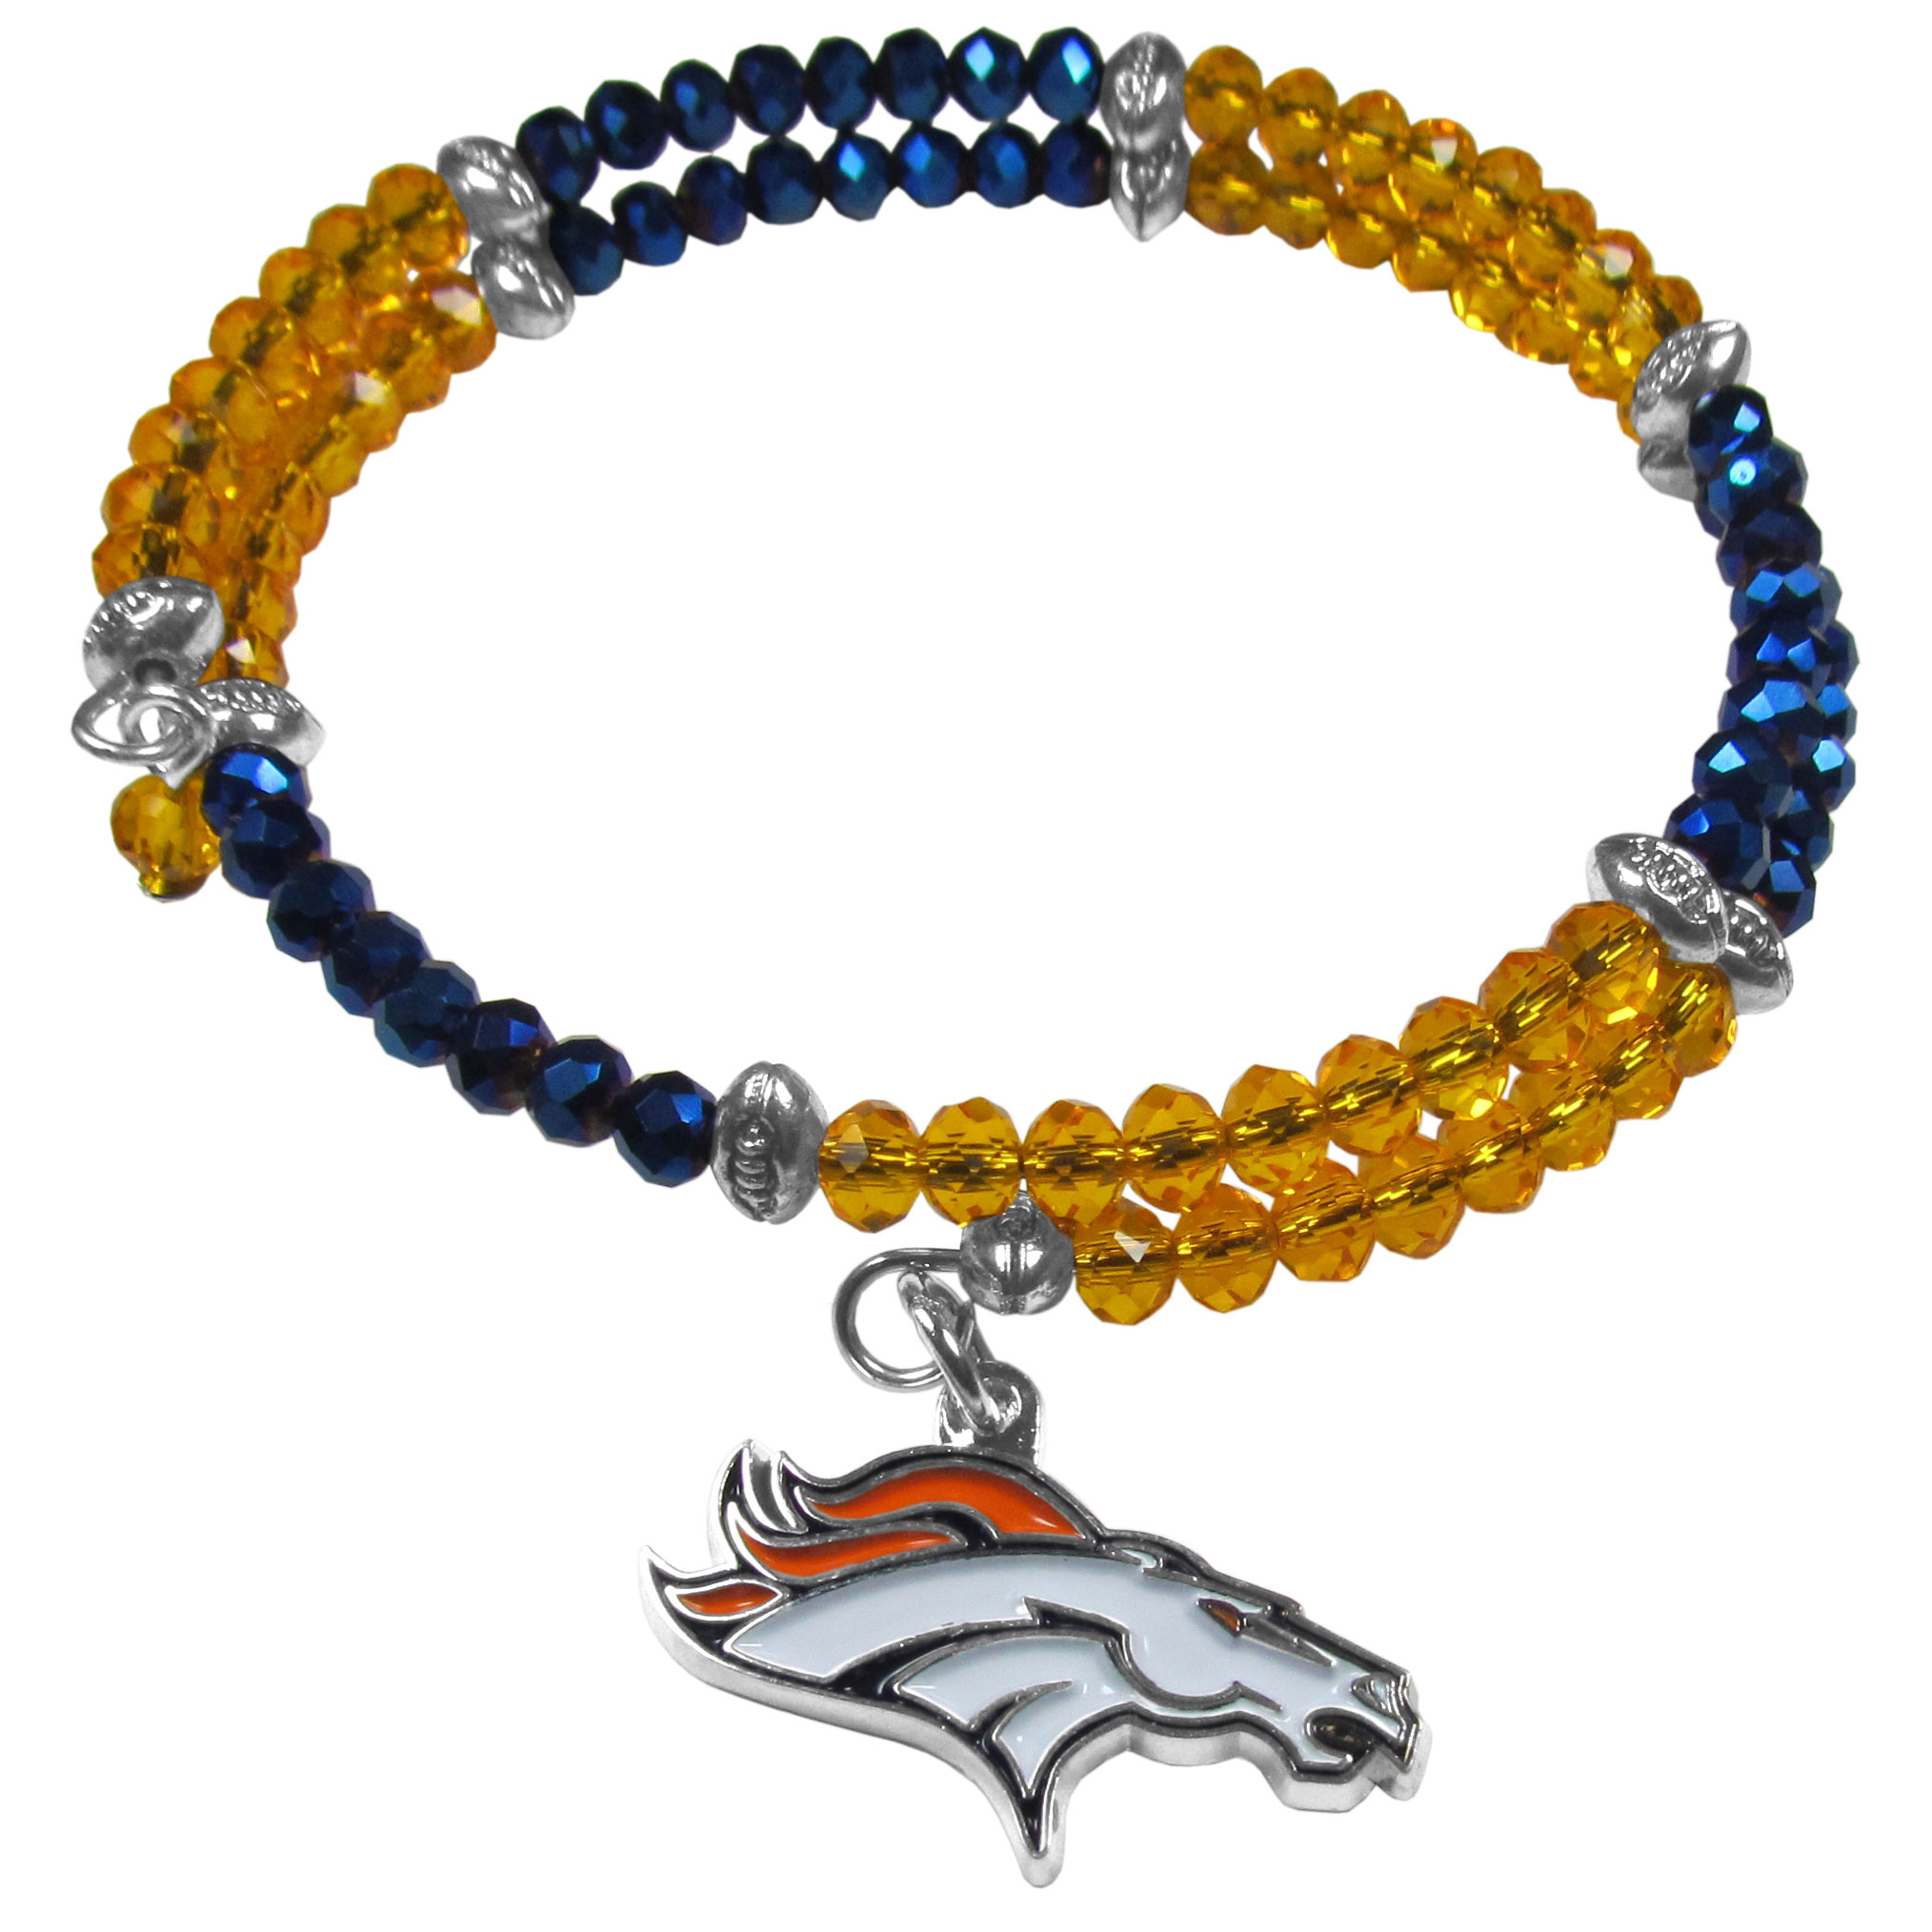 Denver Broncos Crystal Memory Wire Bracelet - Our Denver Broncos memory wire crystal bracelet is trendy way to show off your love of the game. The double wrap bracelet is completely covered in 4 mm crystals that are broken up with adorable football beads creating a designer look with a sporty twist. The bracelet features a fully cast, metal team charm that has expertly enameled team colors. This fashion jewelry piece is a must-have for the die-hard fan with chic style.